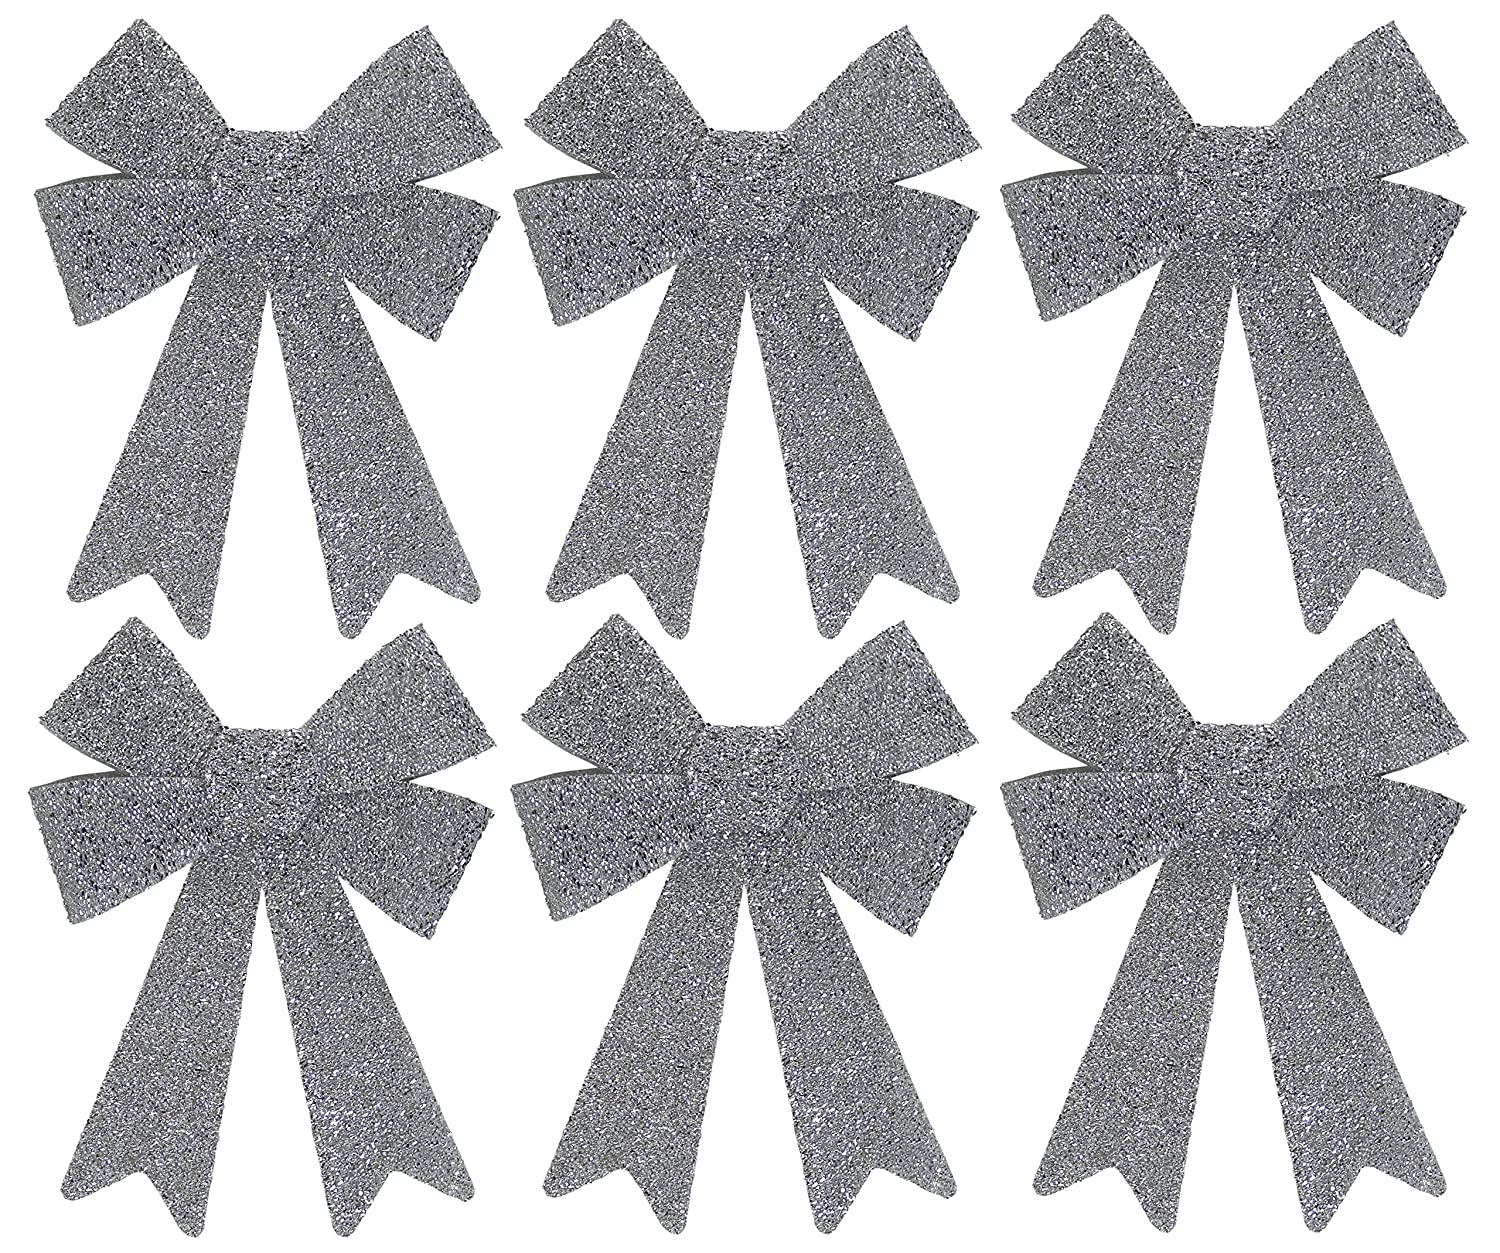 Iconikal 8.7 x 12.6 Inch Decorative Holiday Christmas Glitter Bow - 6 Pack - Silver